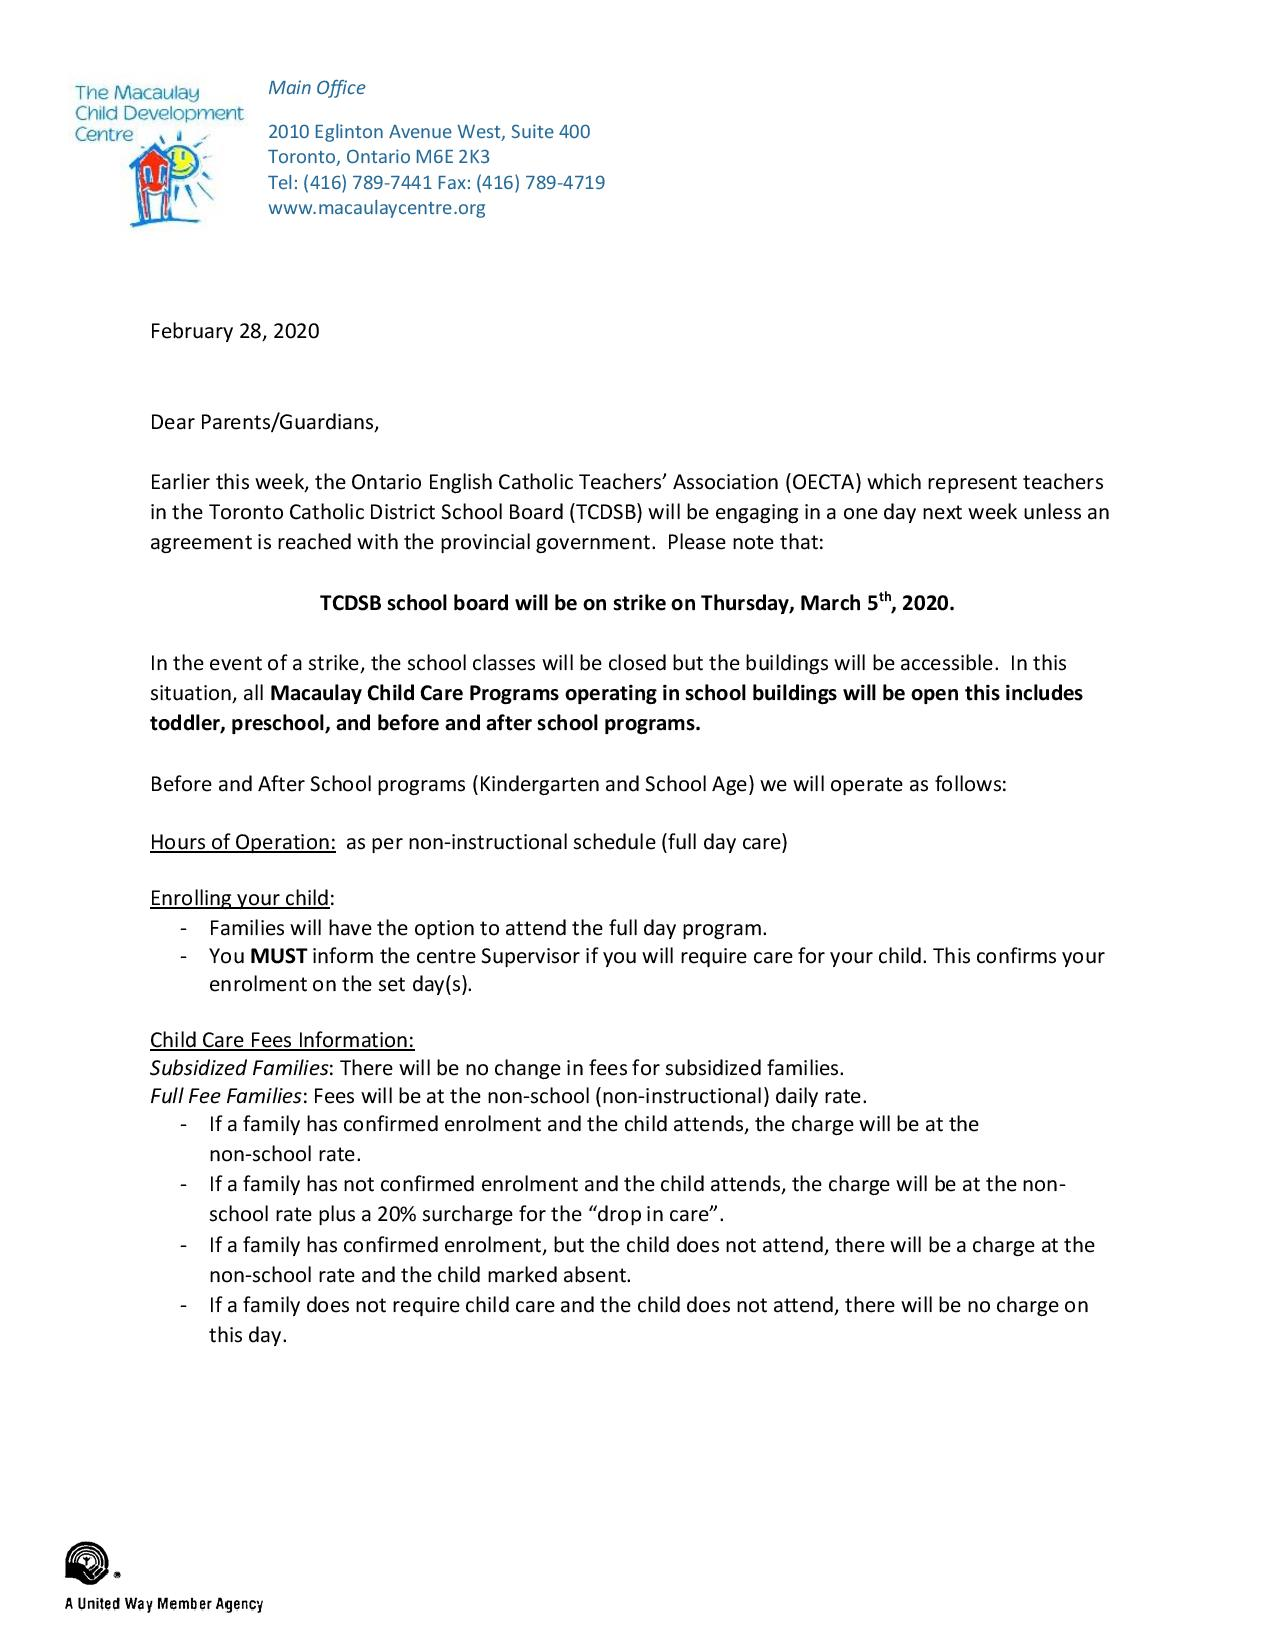 ETFO and OECTA Strike Action (UPDATE* March 5, 2020)